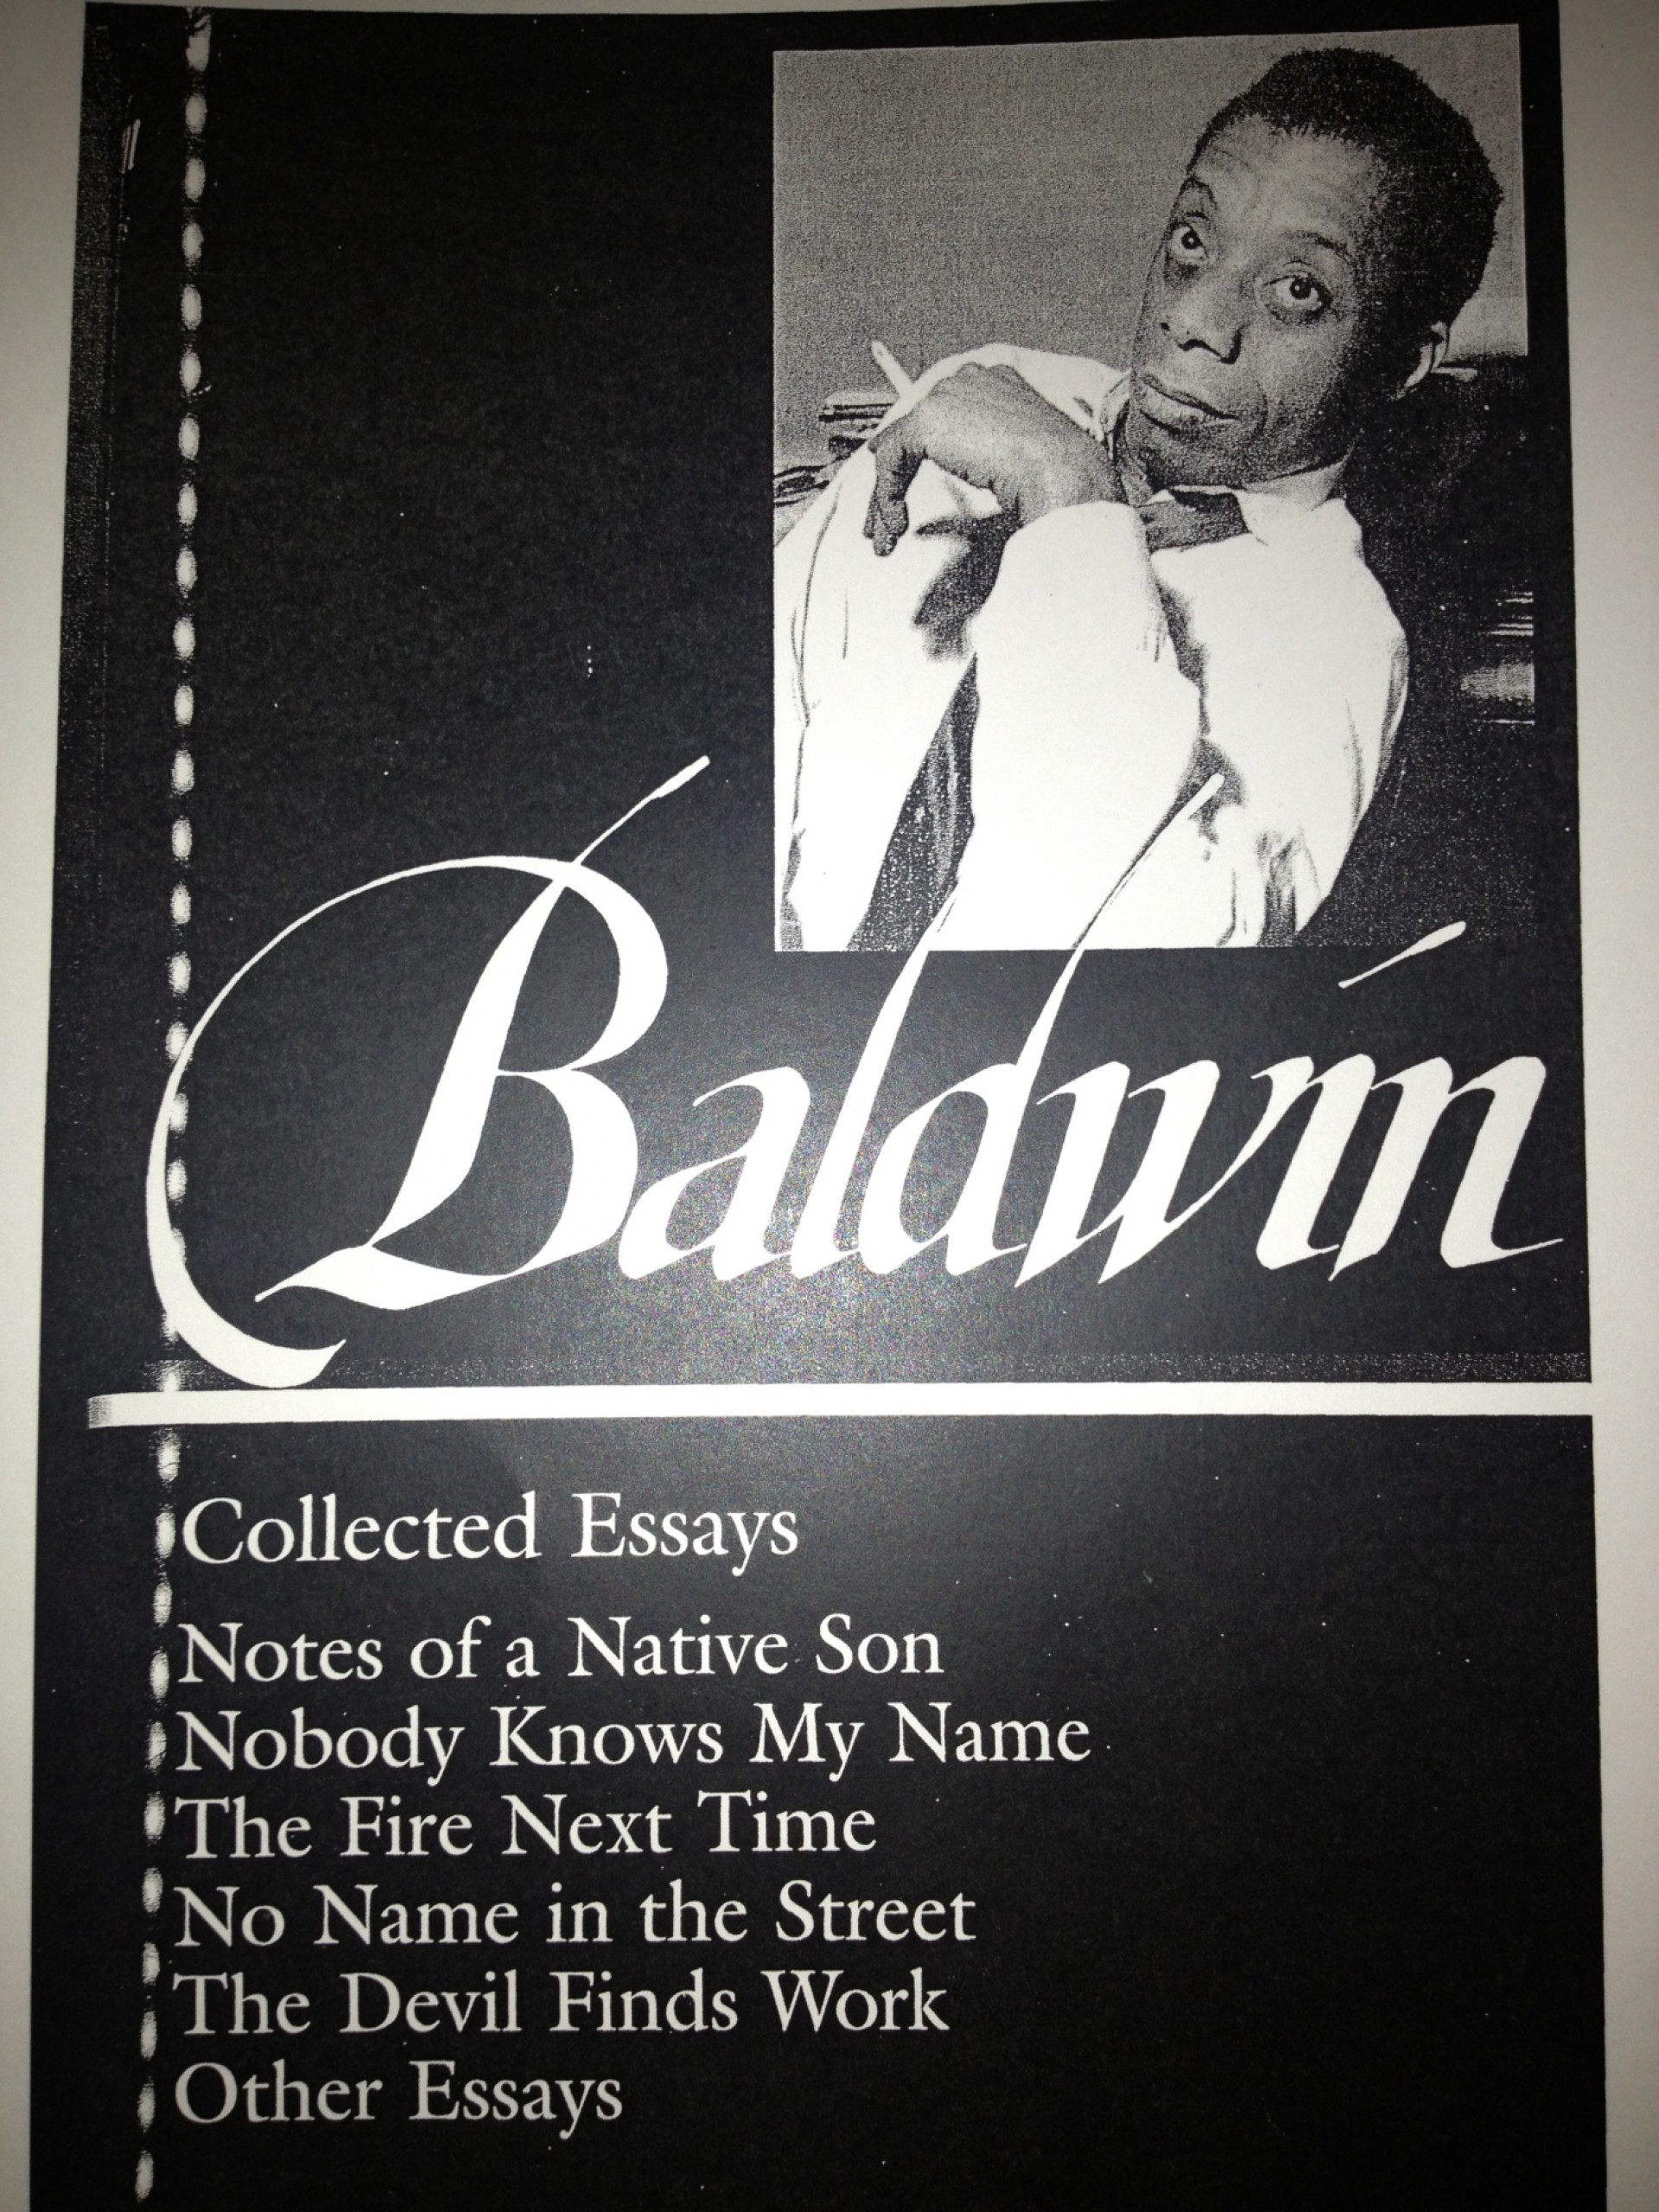 001 Img 4408w1400h9999 James Baldwin Collected Essays Essay Wondrous Table Of Contents Ebook Google Books 1920